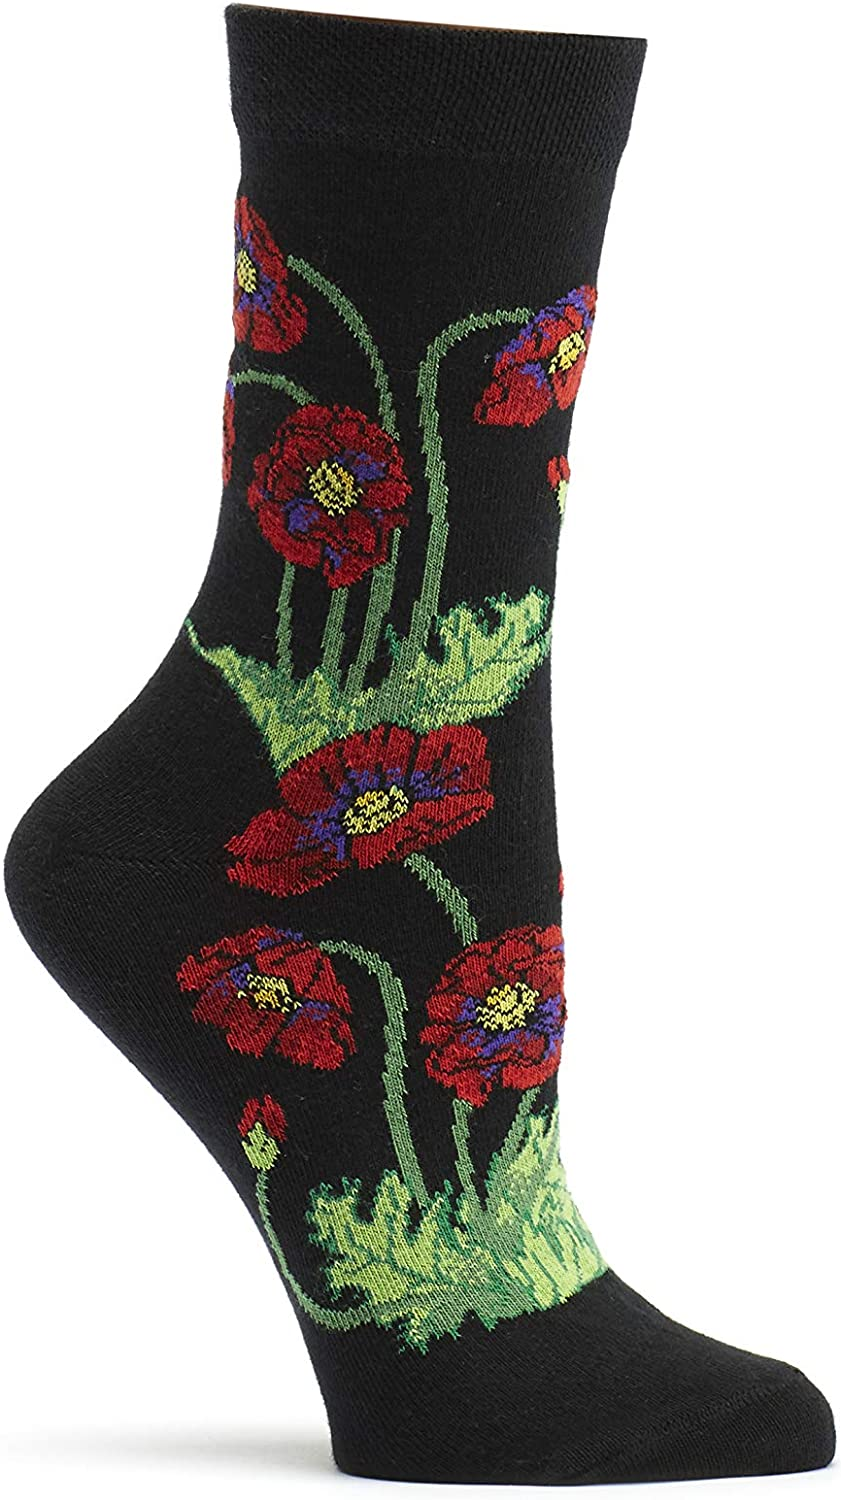 Ozone womens Apothecary Florals Sock